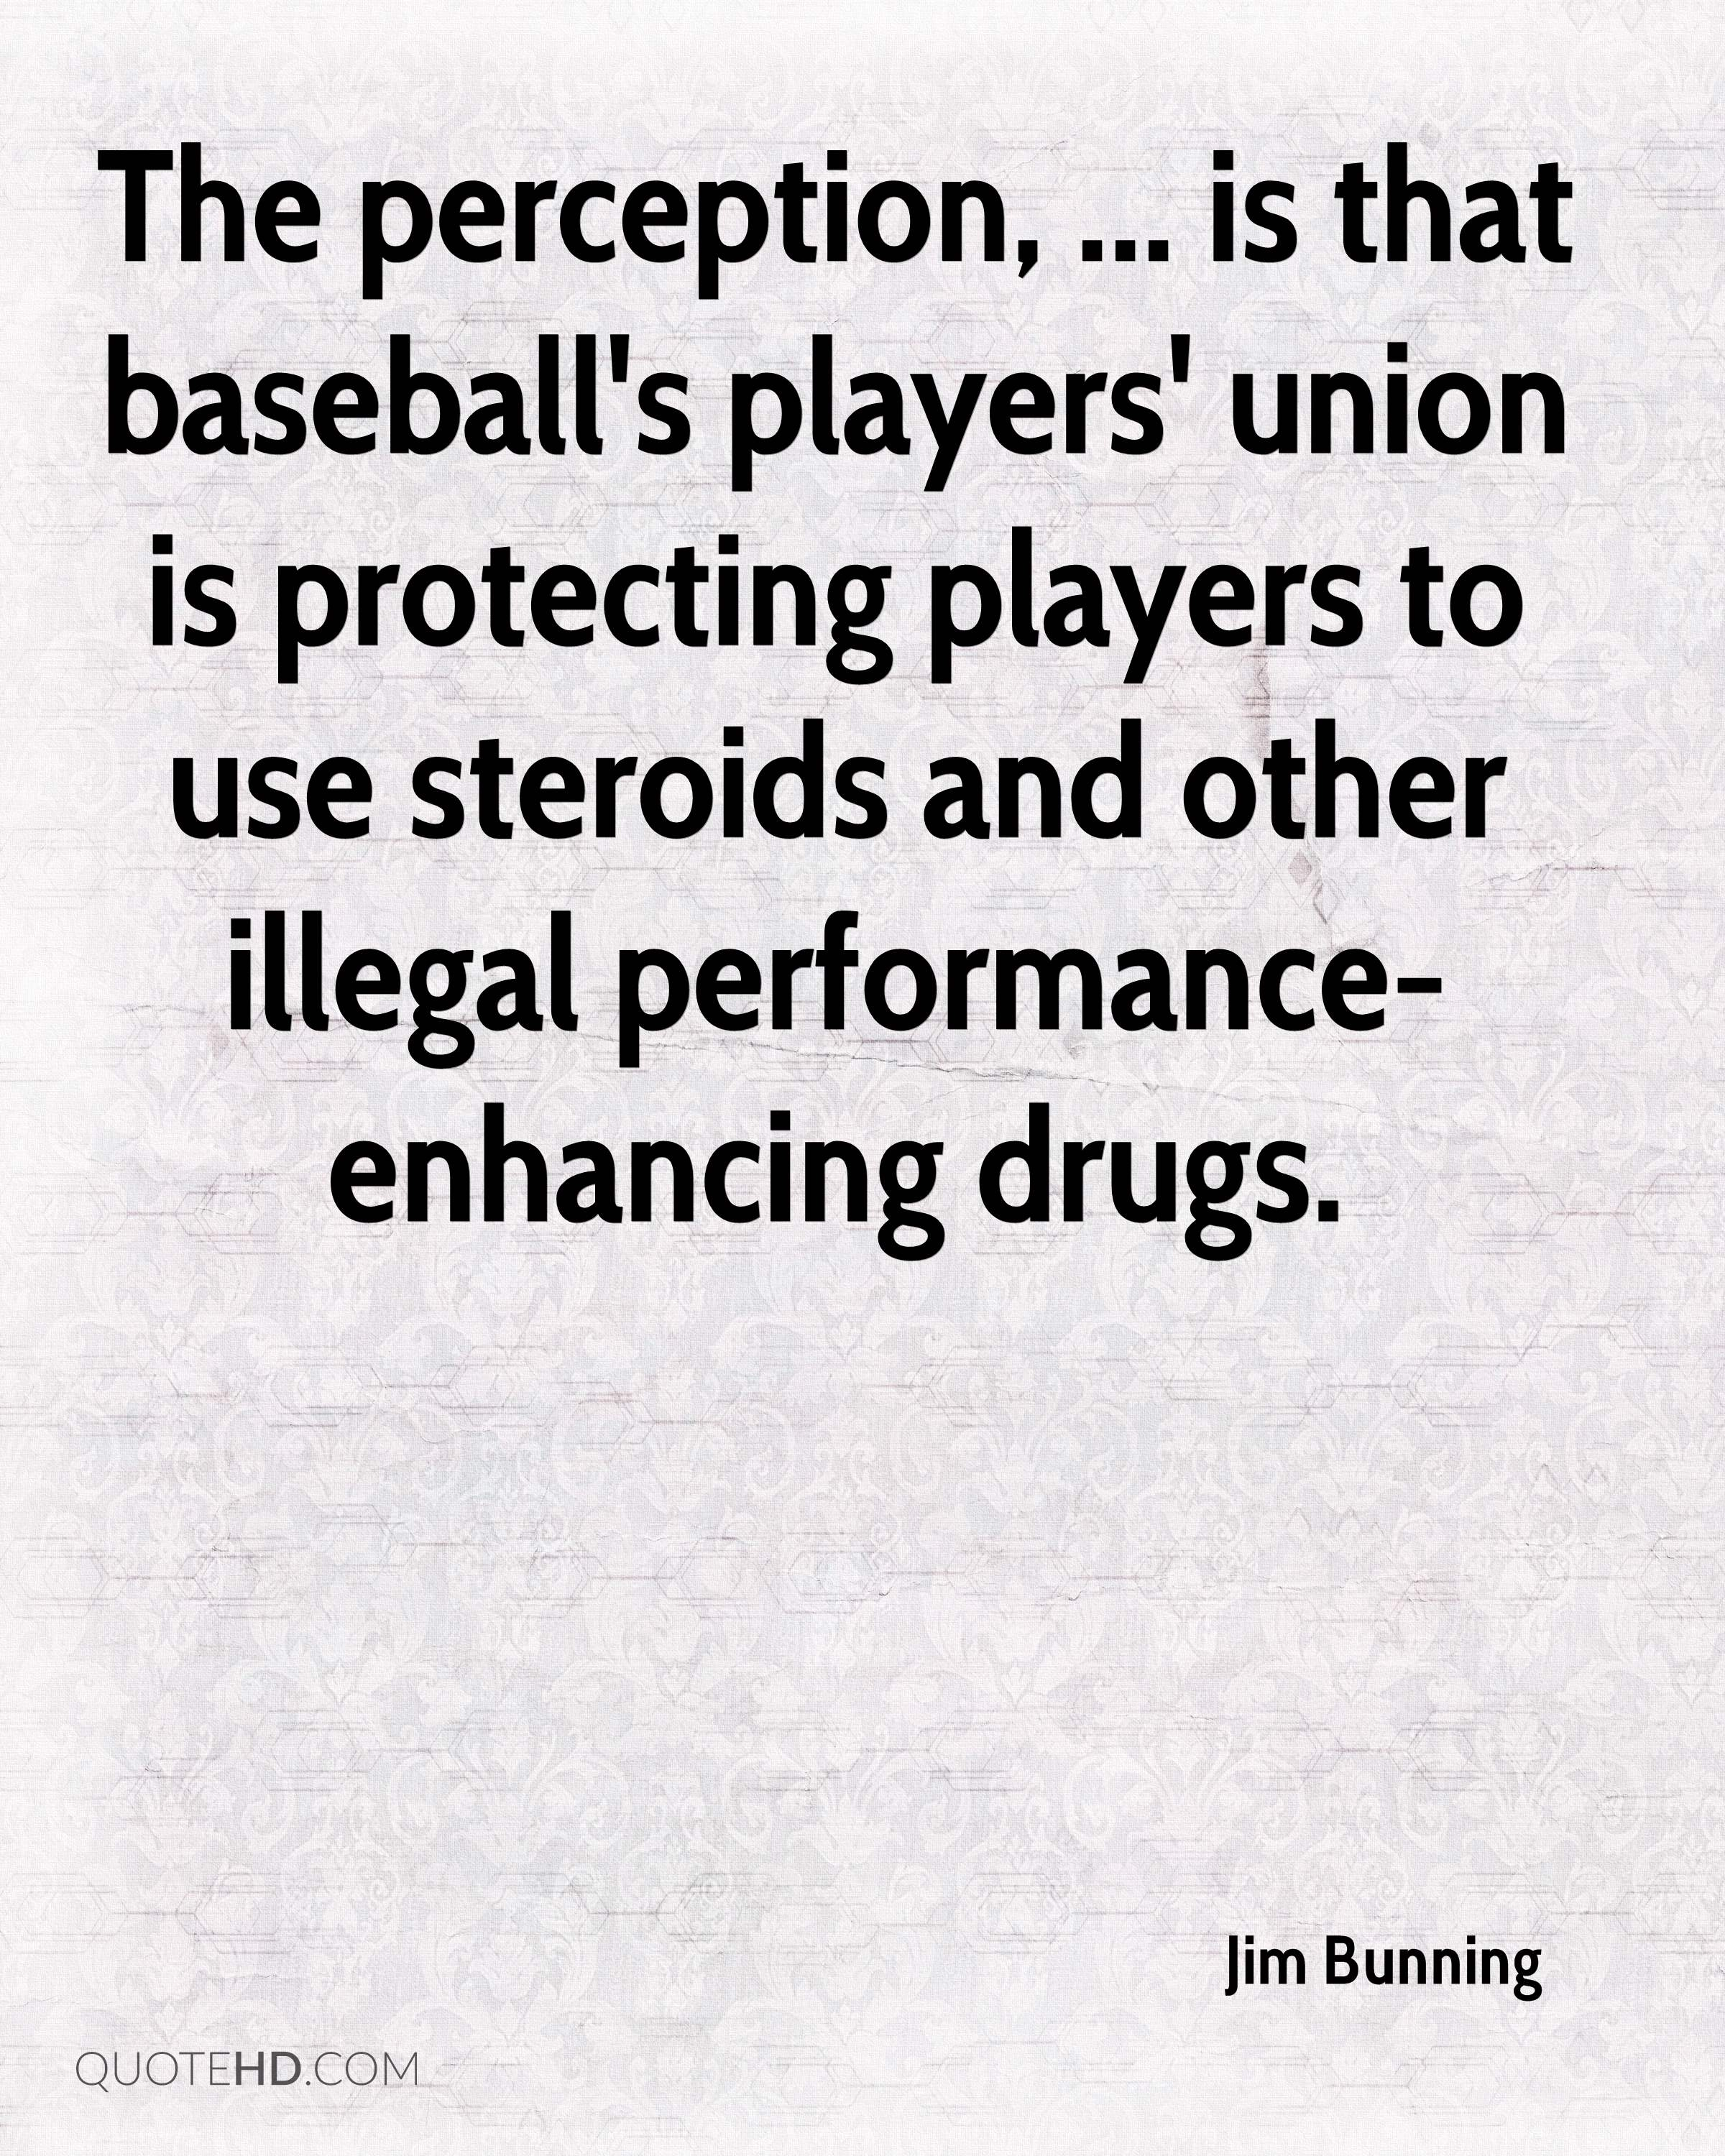 The perception, ... is that baseball's players' union is protecting players to use steroids and other illegal performance-enhancing drugs.